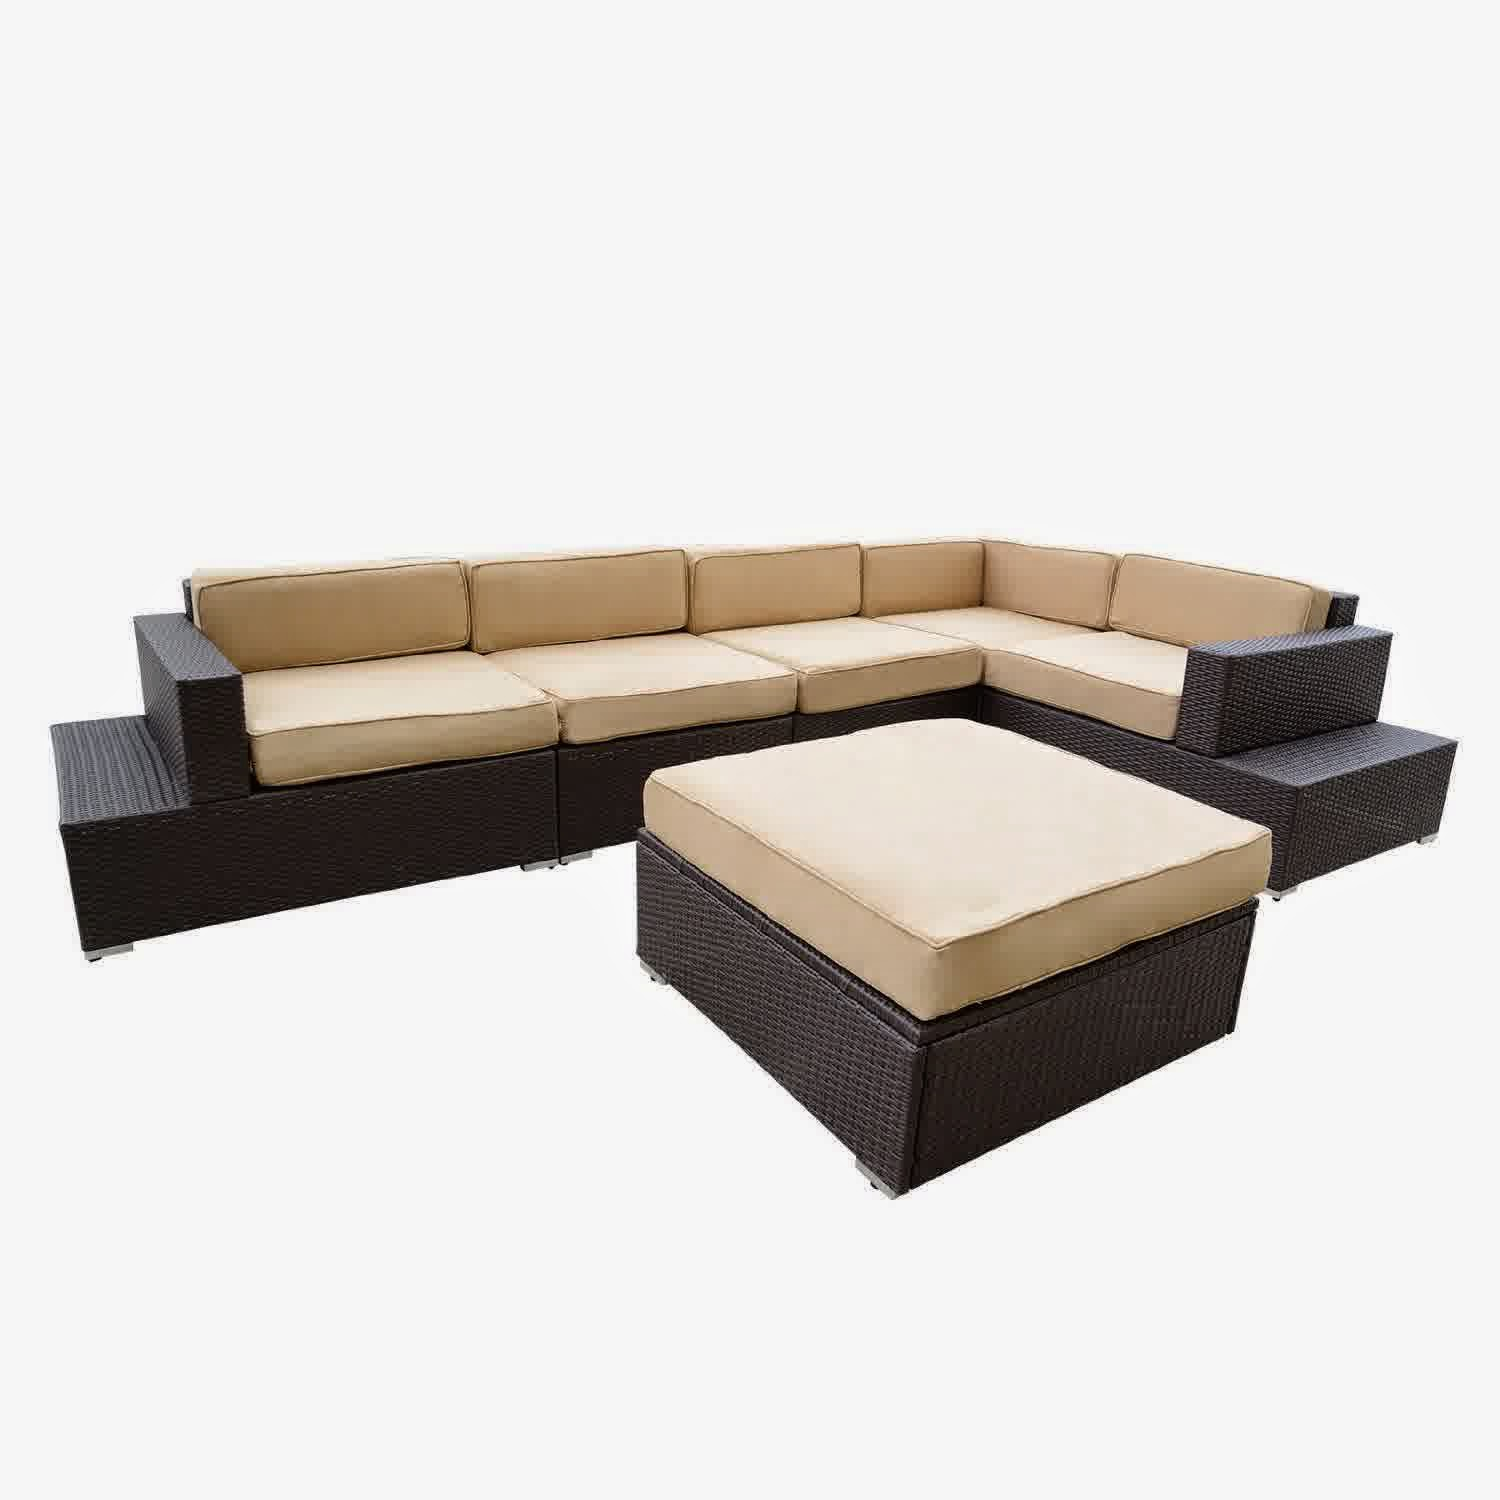 Big sale discount 50 outdoor patio rattan sofa wicker Outdoor sofa tables